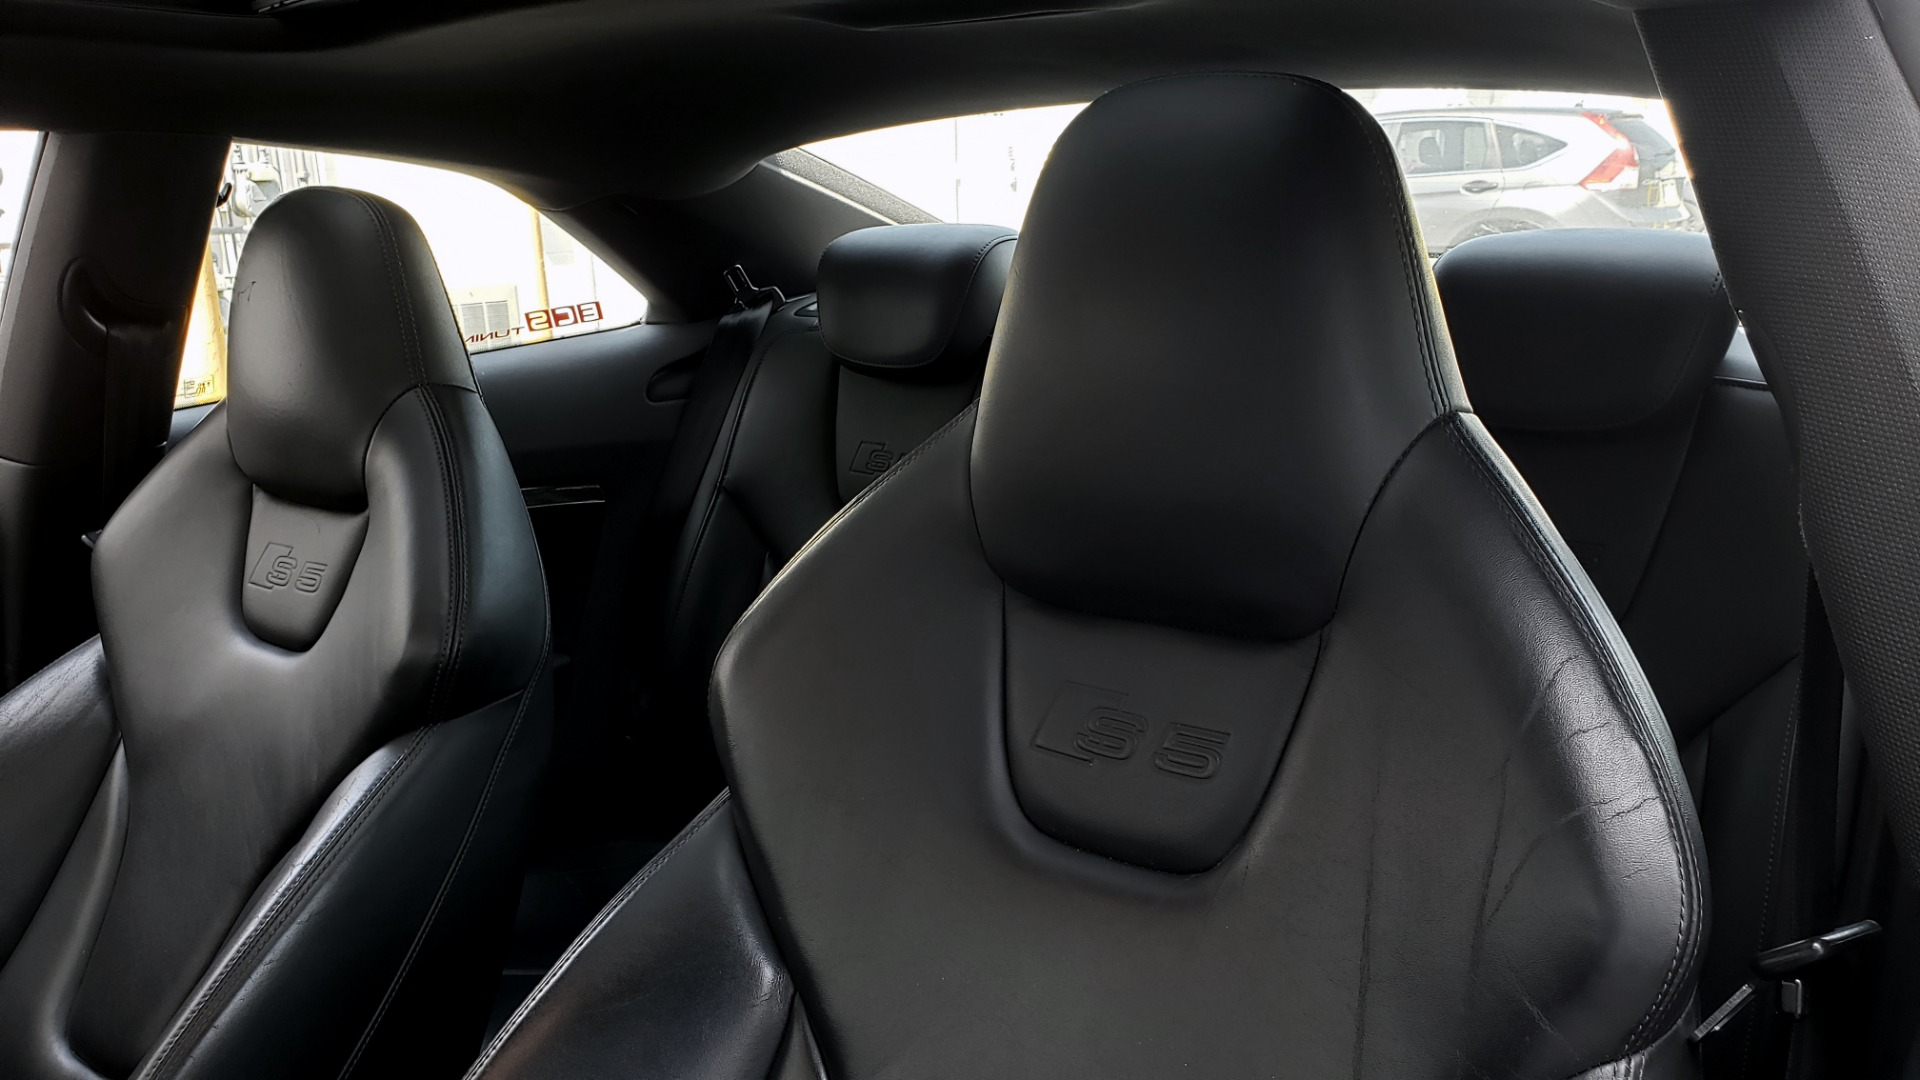 Used 2011 Audi S5 PREMIUM PLUS / AVENGERS COUPE / NAV / SUNROOF / REARVIEW for sale Sold at Formula Imports in Charlotte NC 28227 42